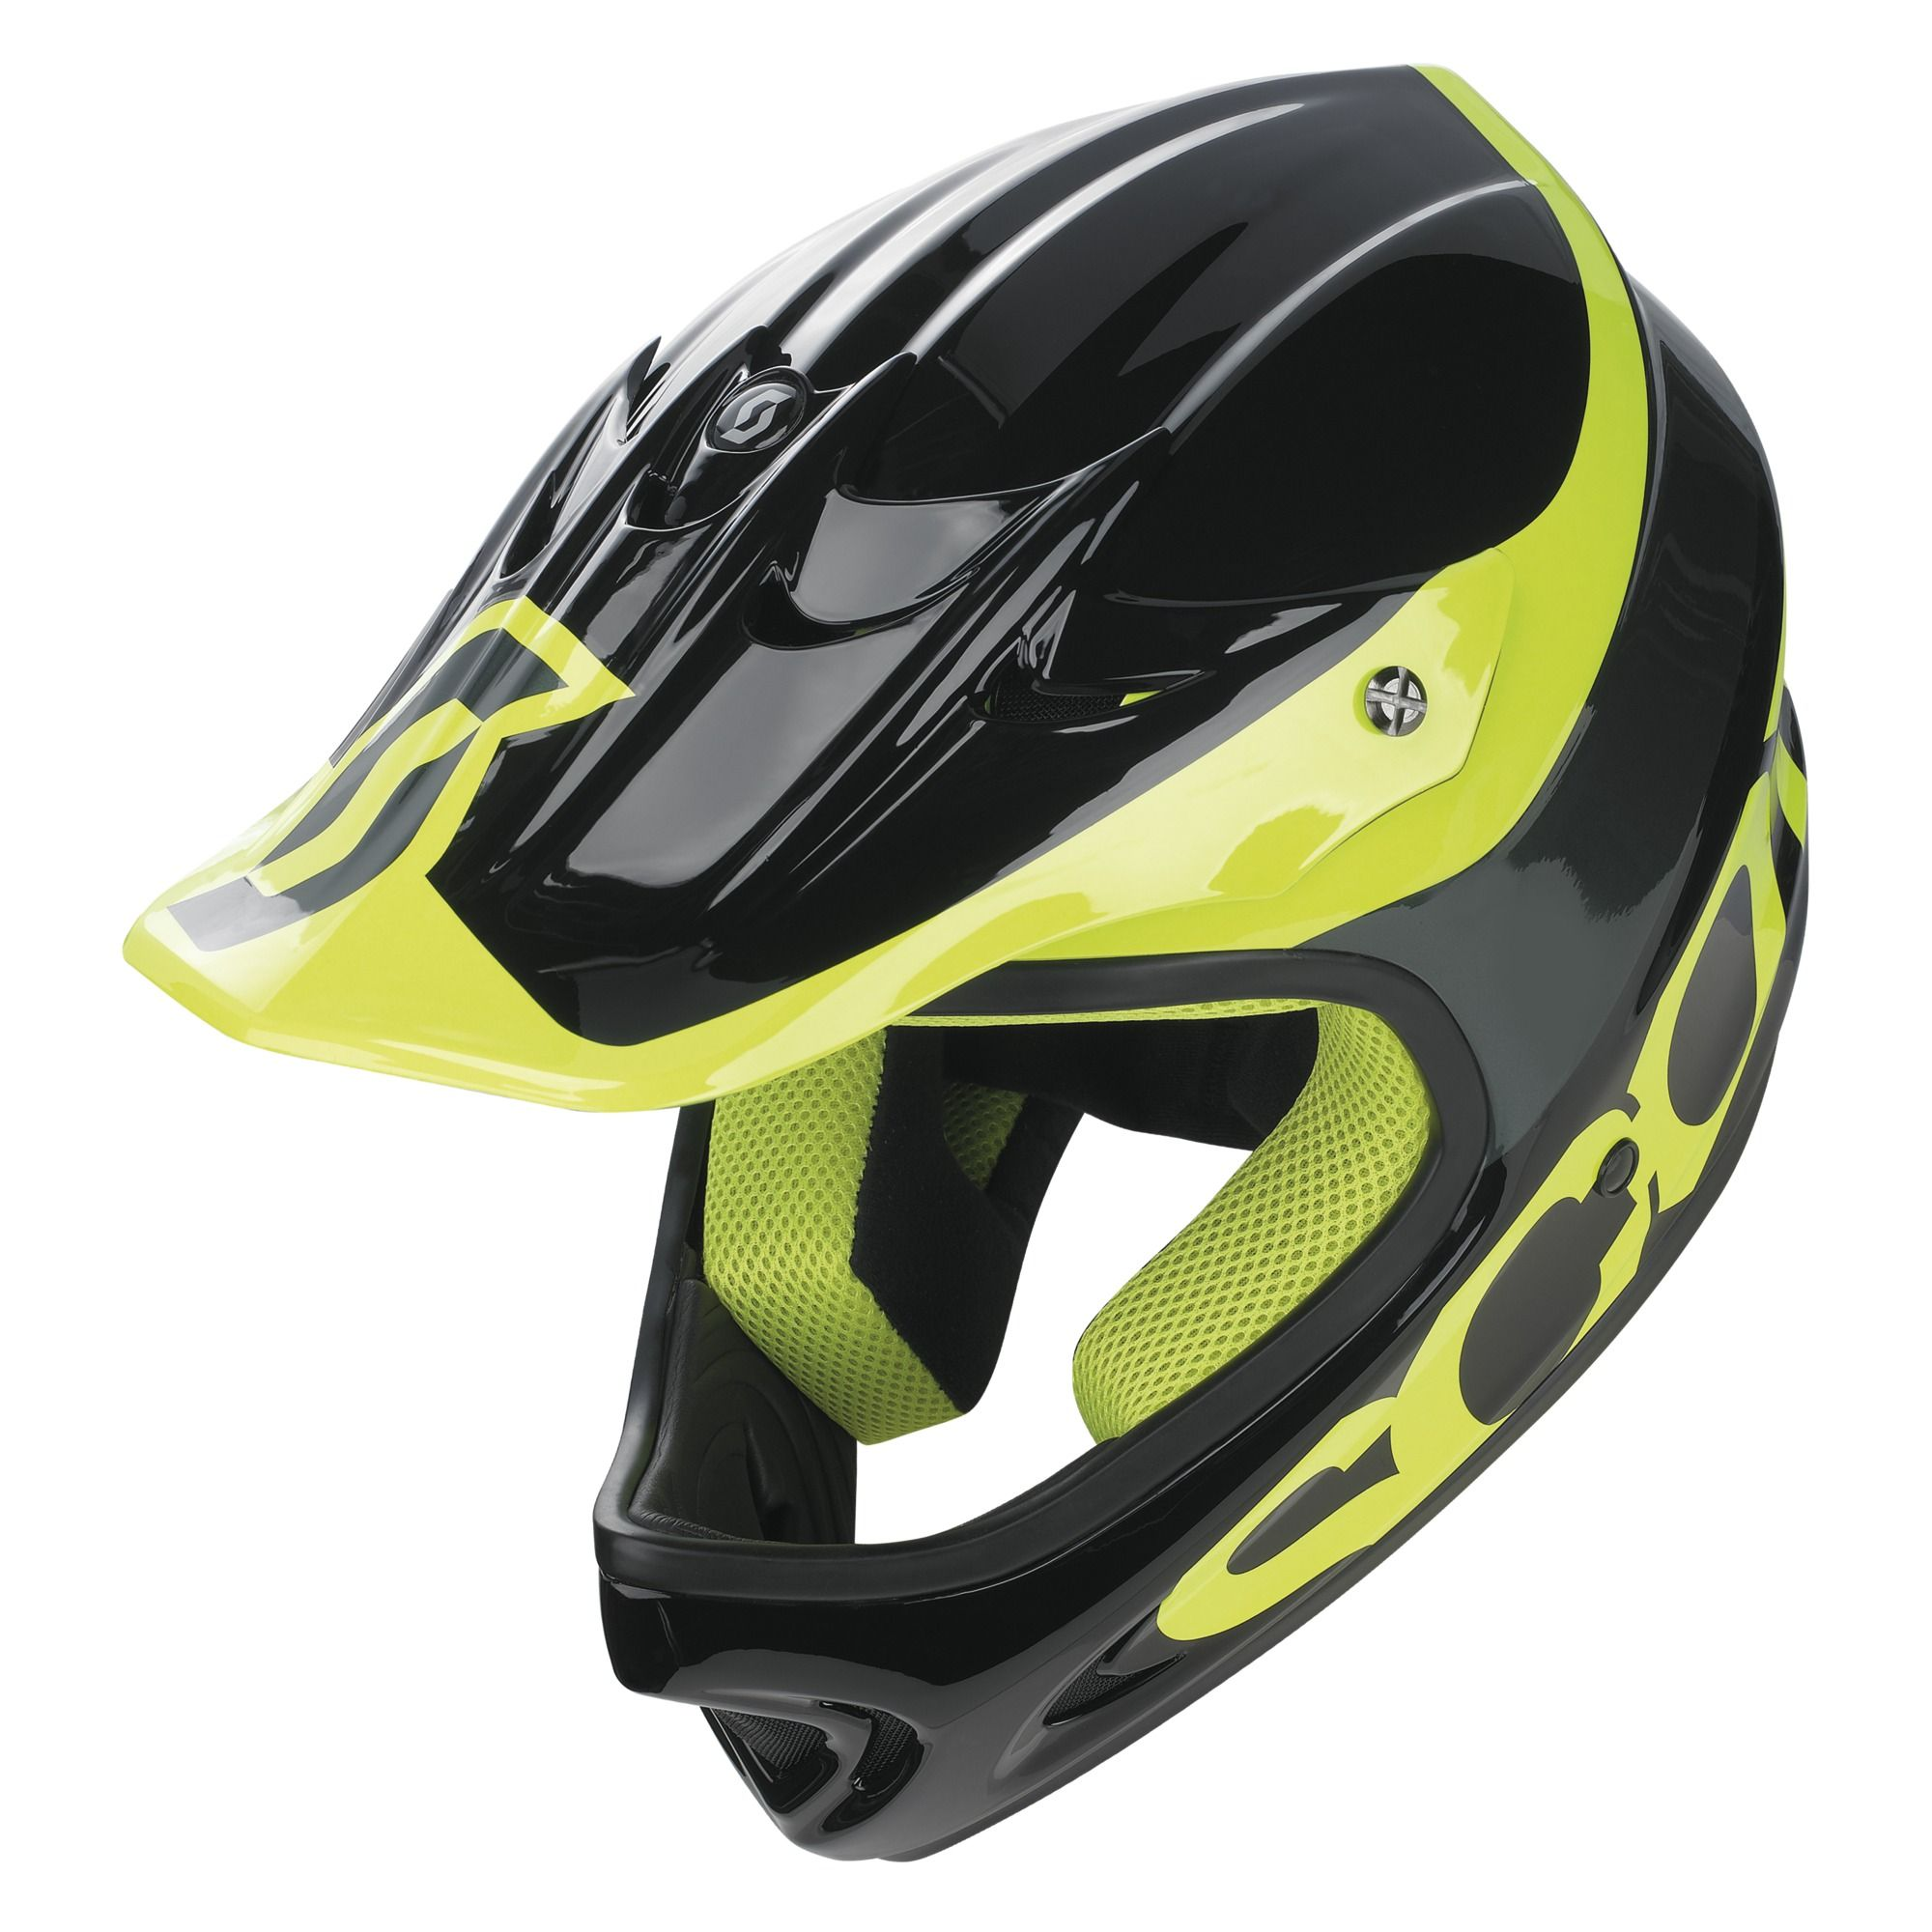 If you're looking for a Freeride helmet, then the SCOTT